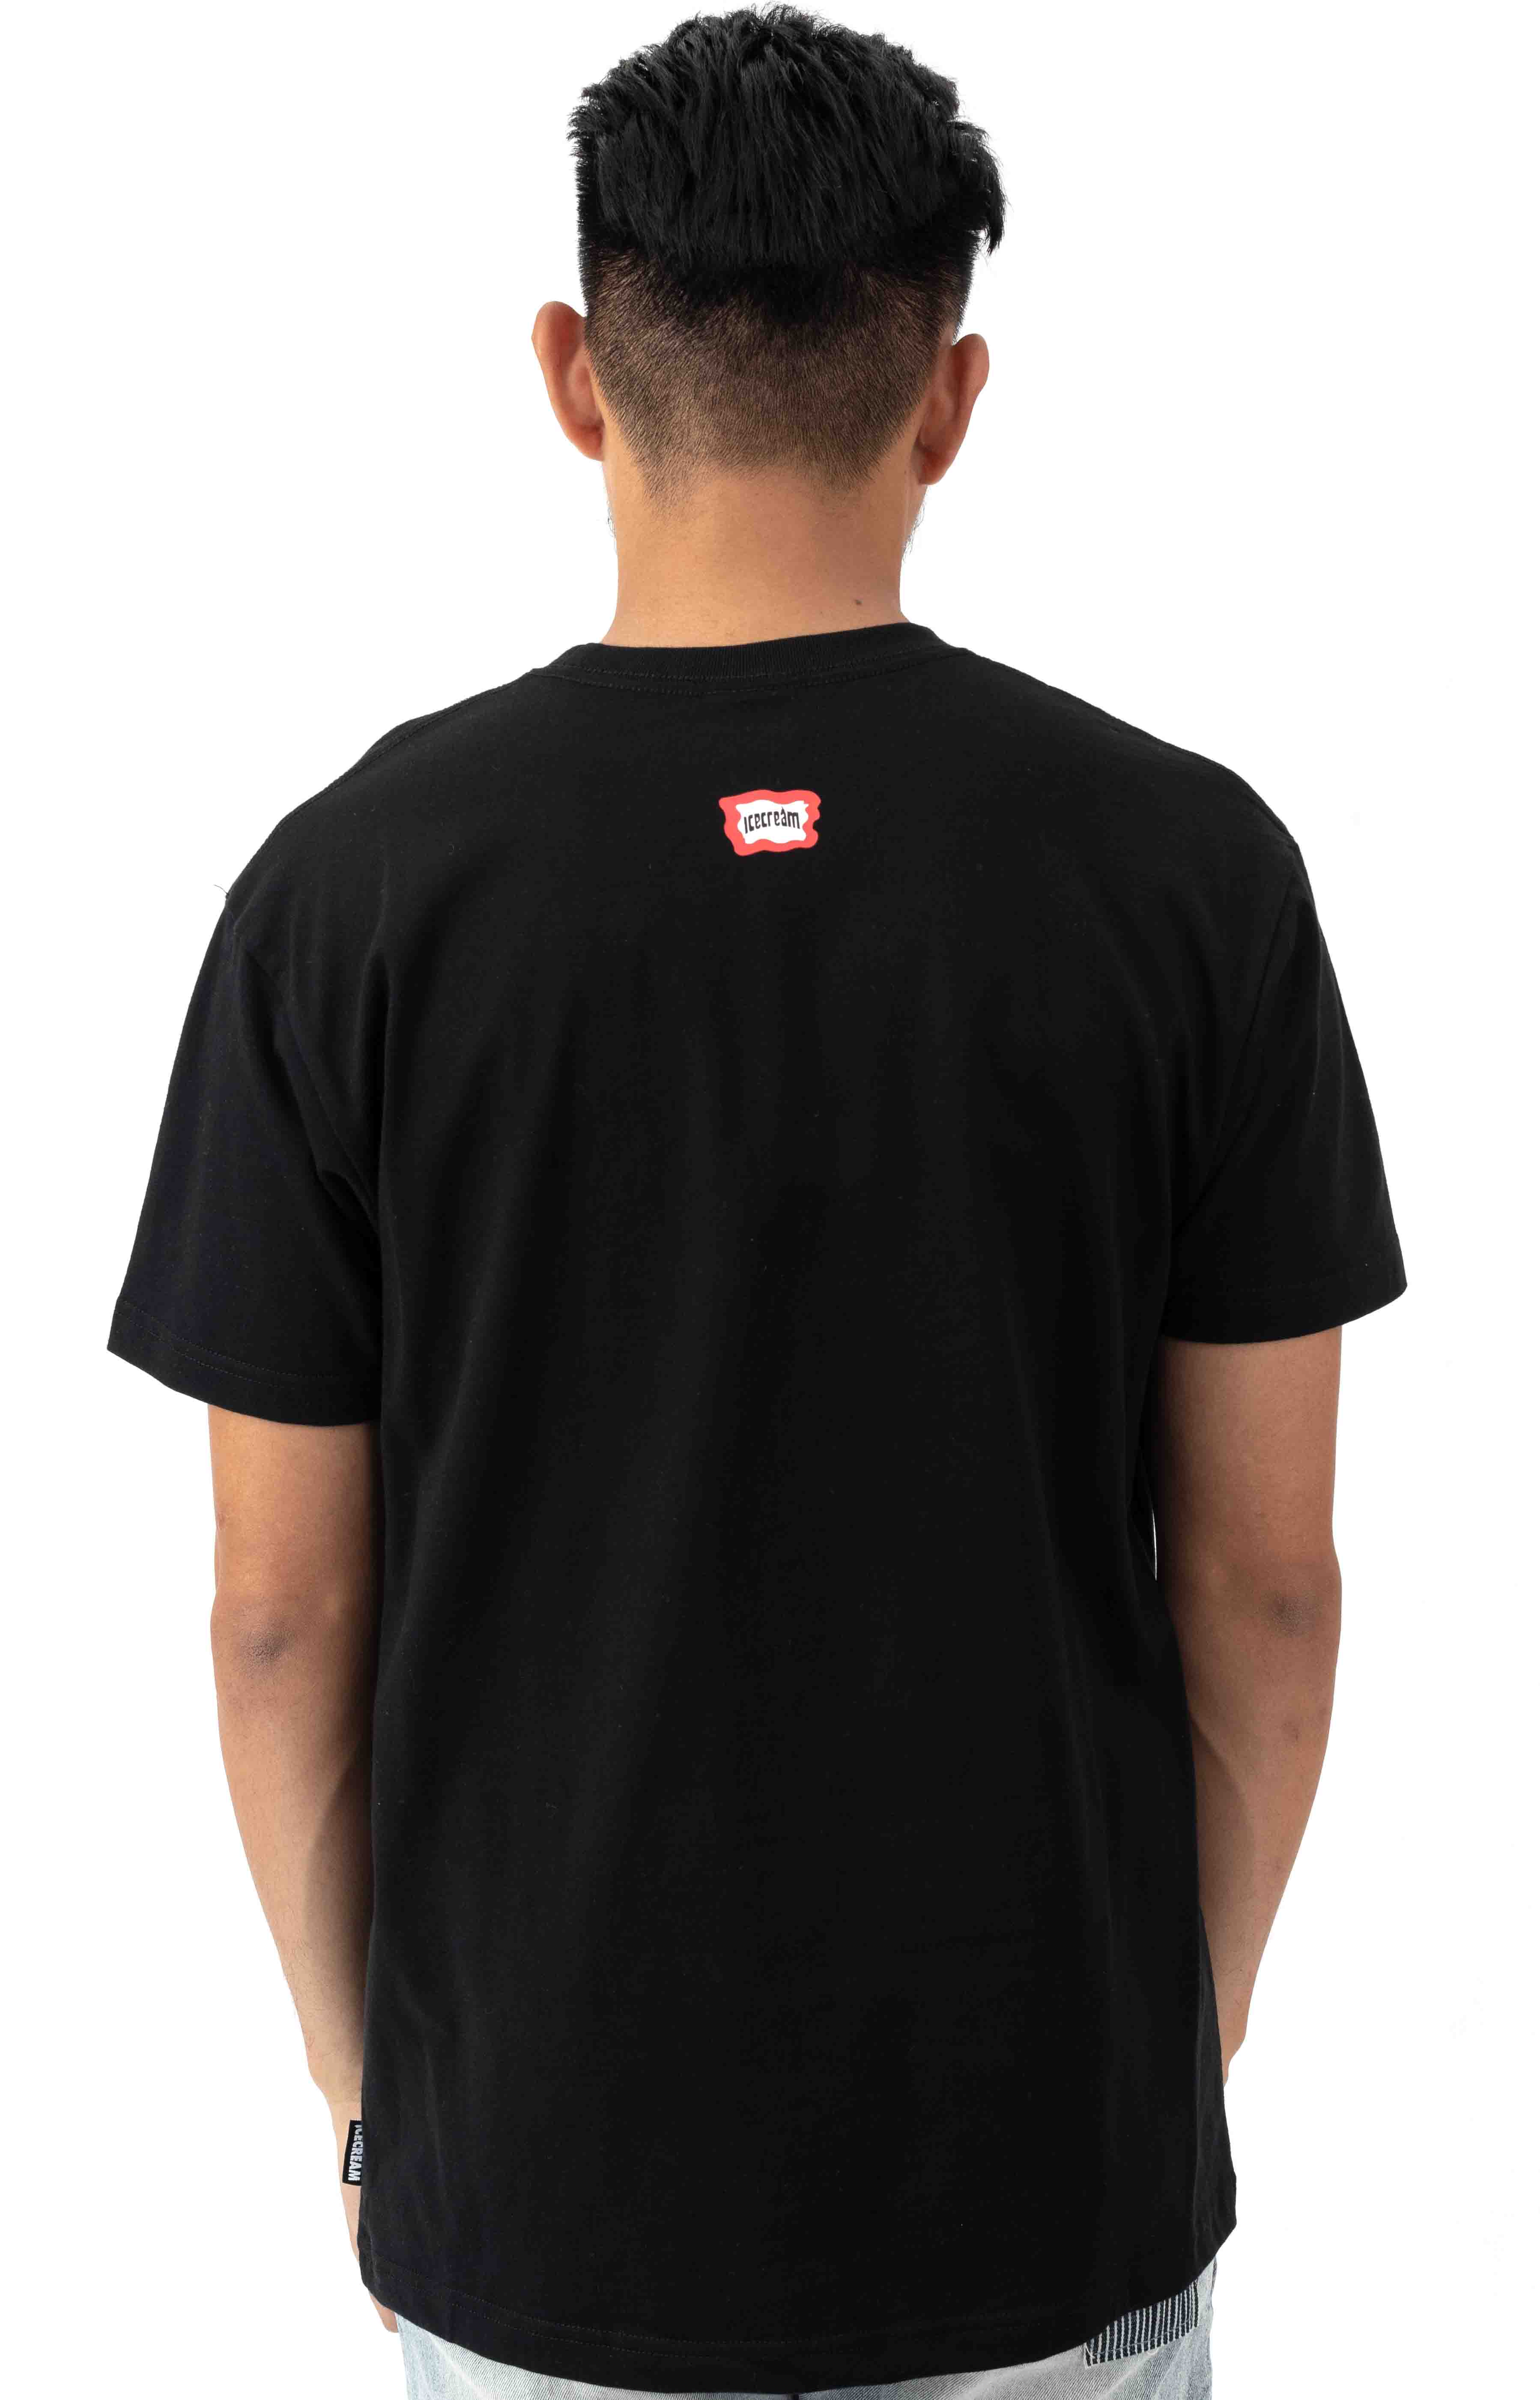 Gilgamesh T-Shirt - Black 3